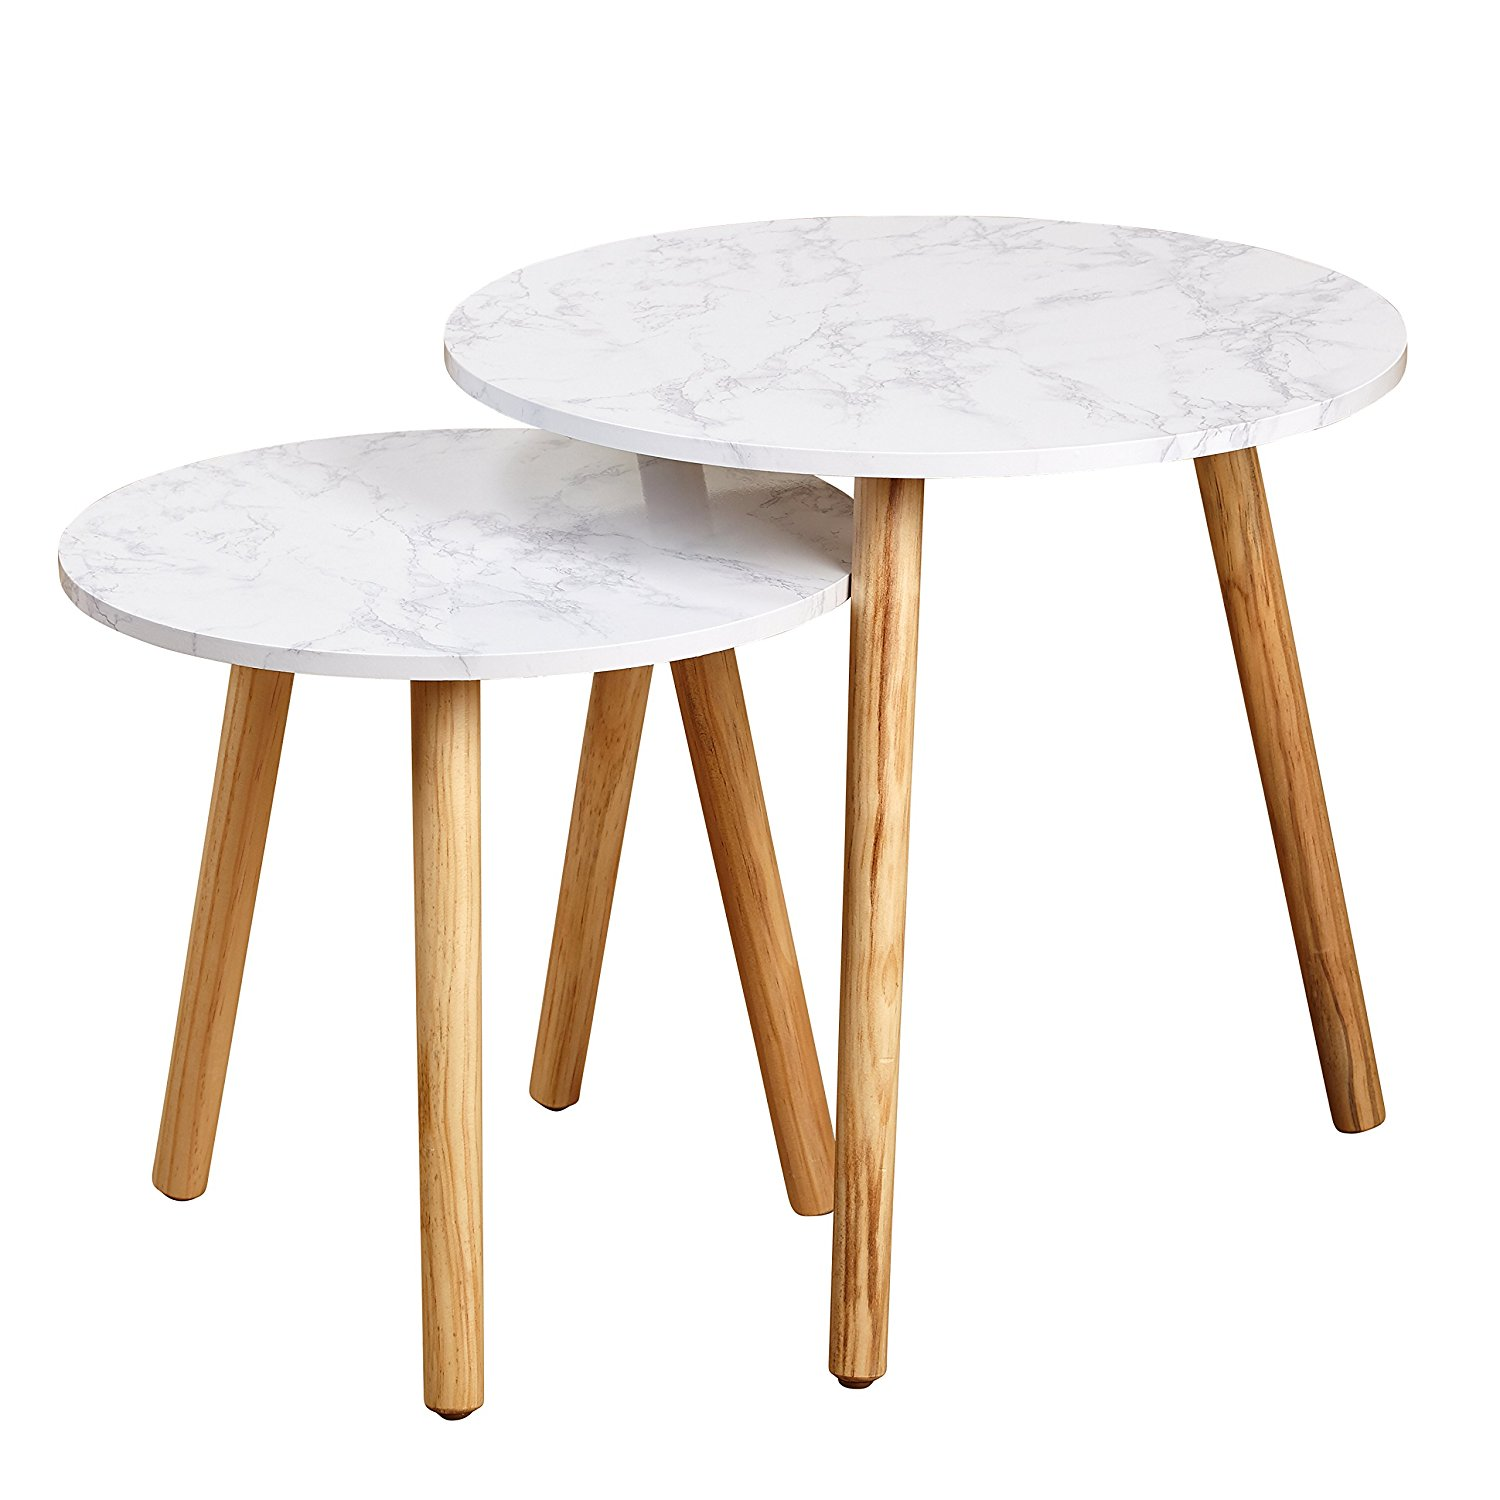 Darcy Collection Mid Century Modern Set of 2 Faux Marble Nesting Tables